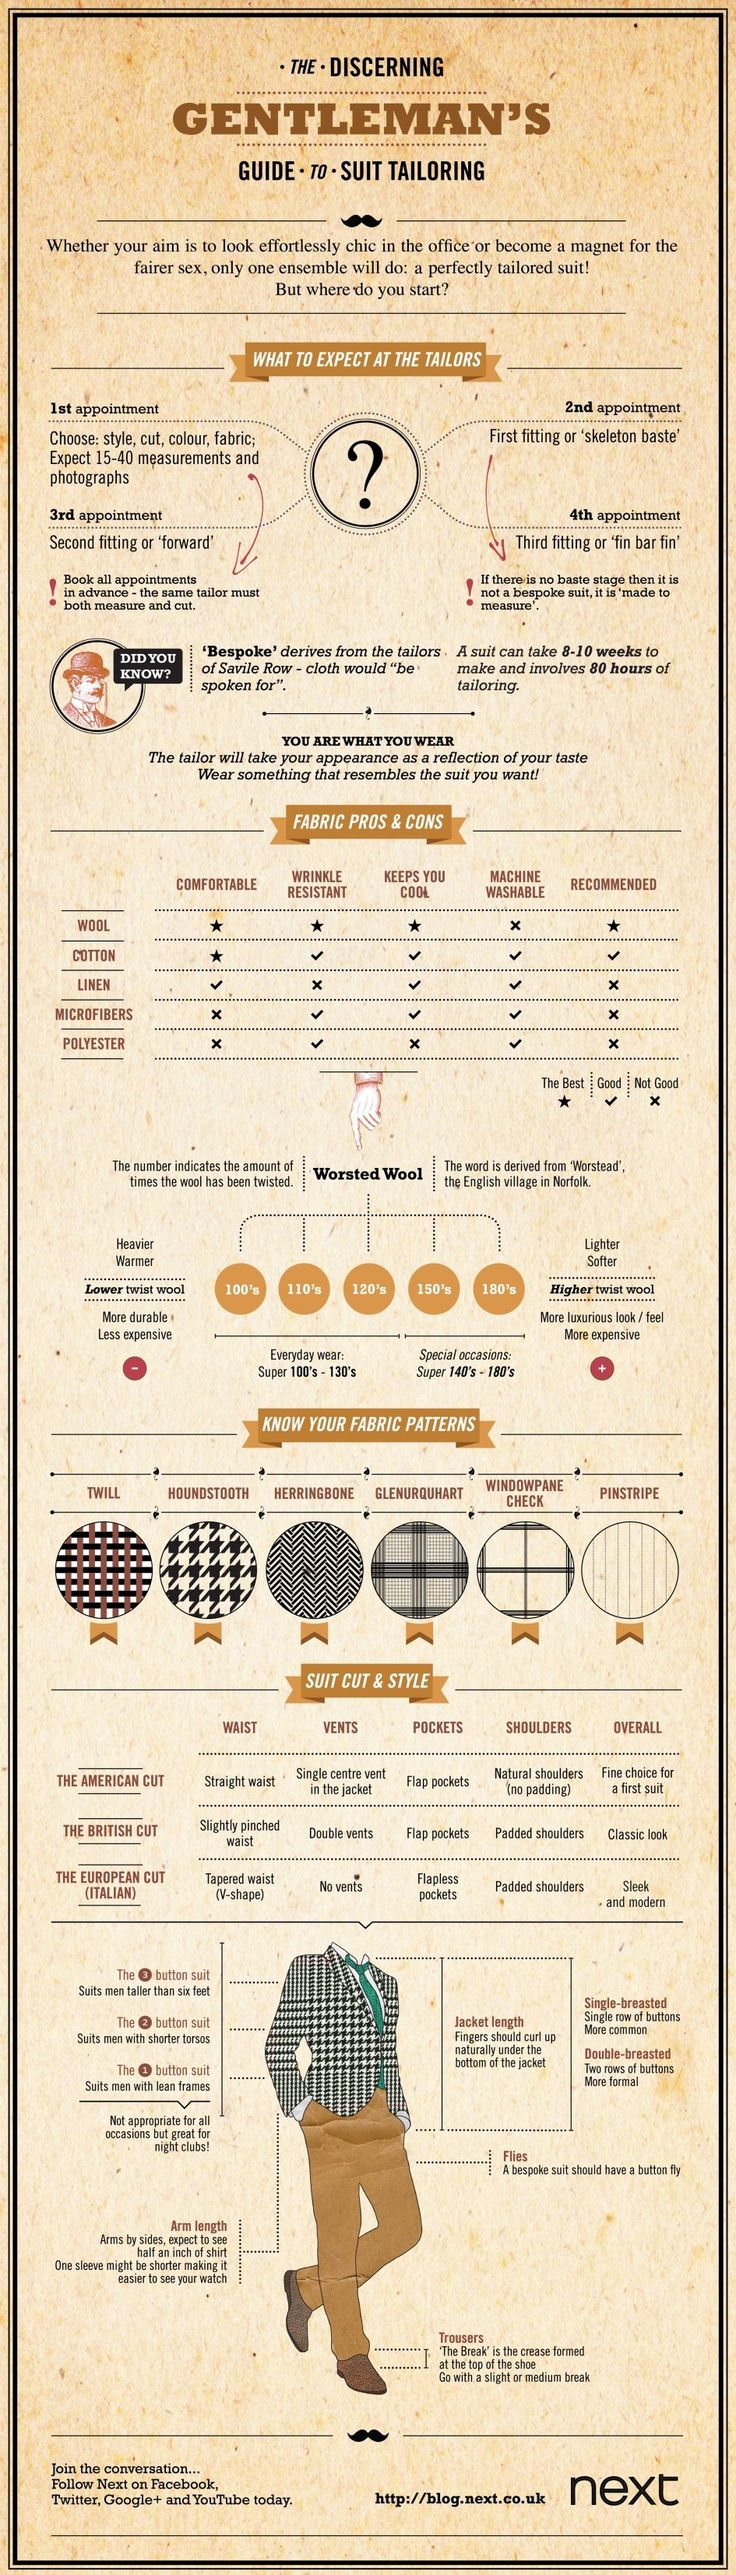 Men's tailoring info-graphicMenfashion, Gentleman Guide, Gentlemens Guide, Discernment Gentleman, Men Fashion, Men Suits, Infographic, Men Tailored, Suits Tailored